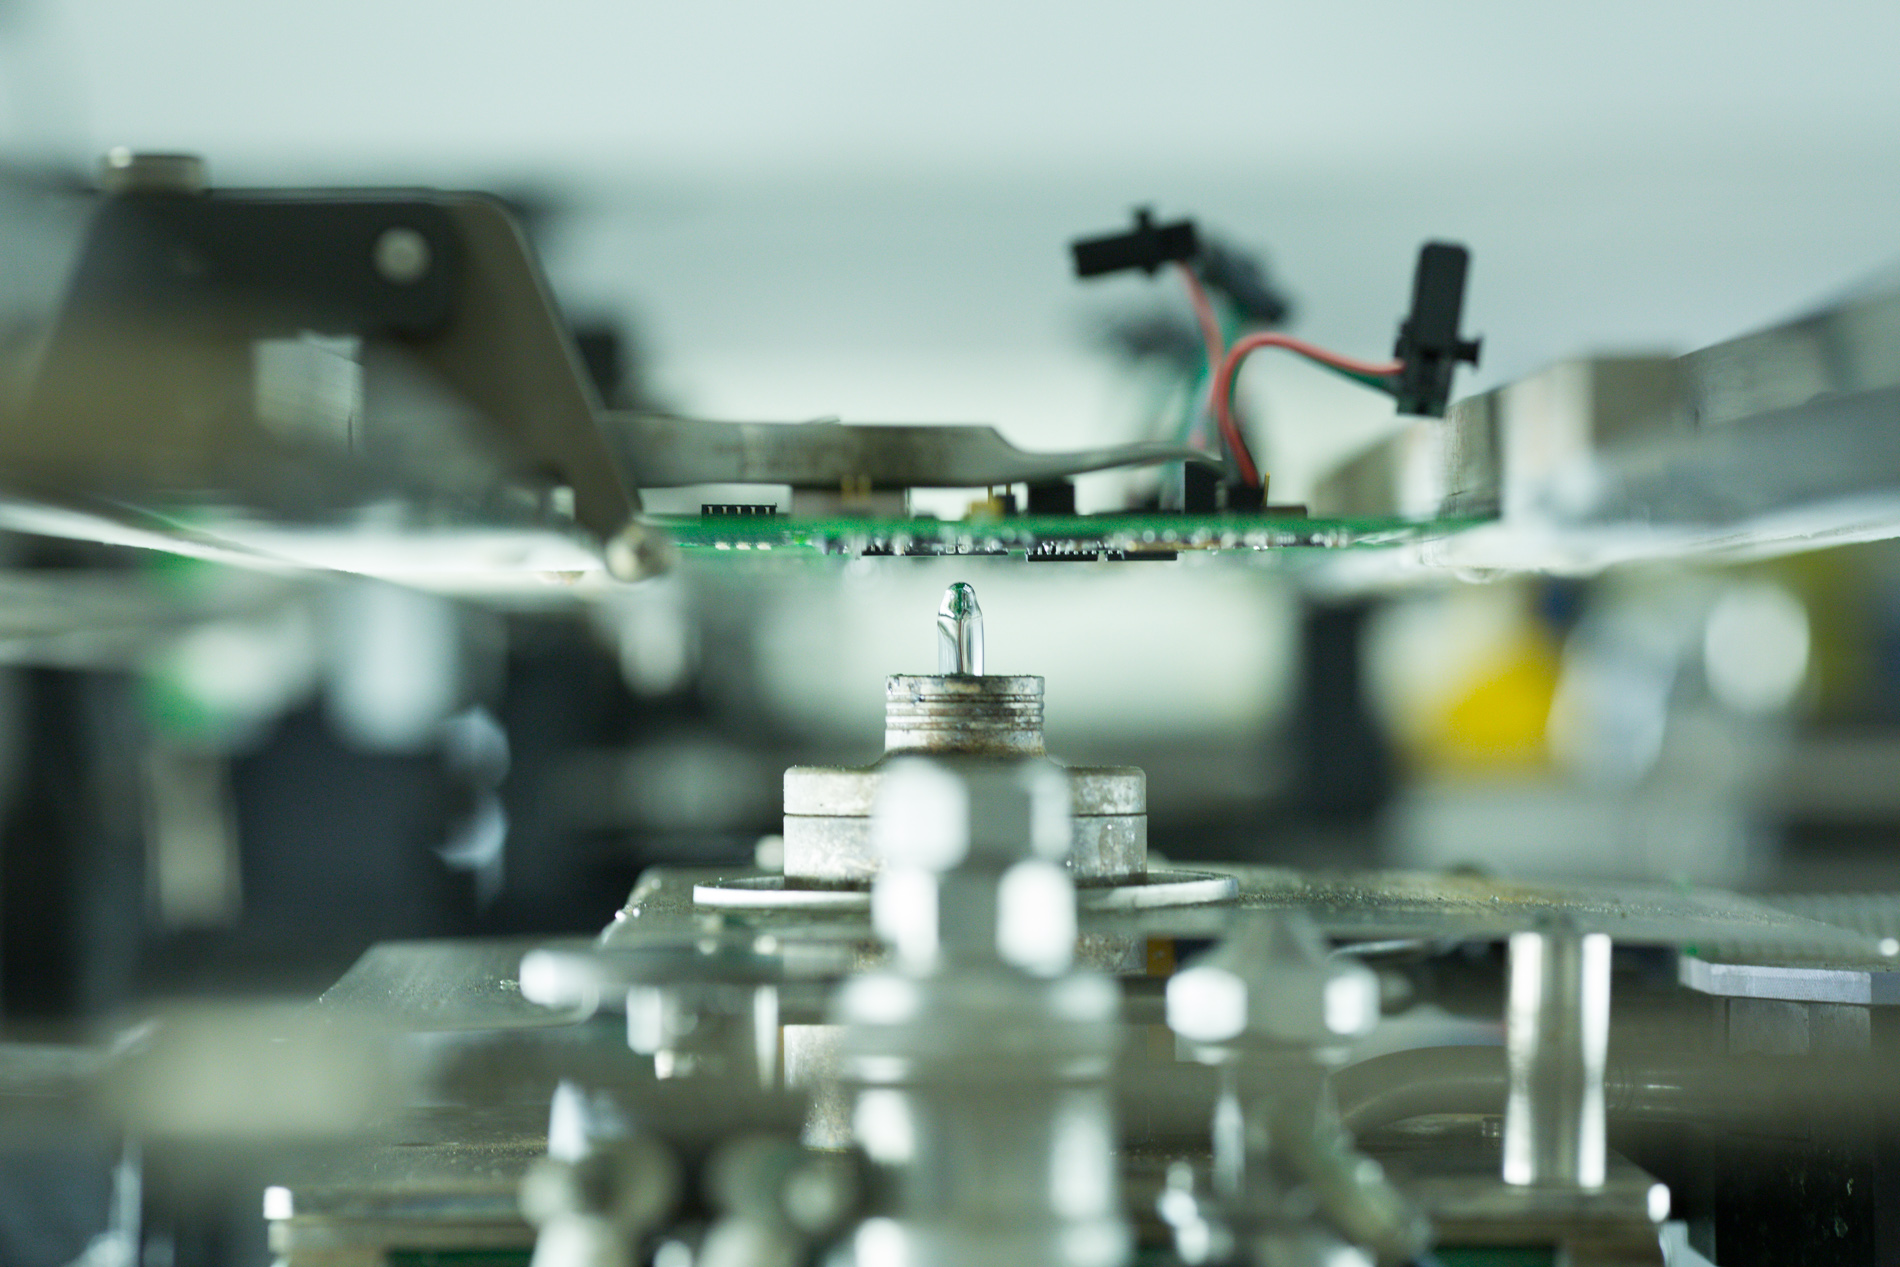 Manufacturing Capabilities Online Development Inc Printed Circuit Board Supply Domestic And Offshore Services Whether Your Needs Are For